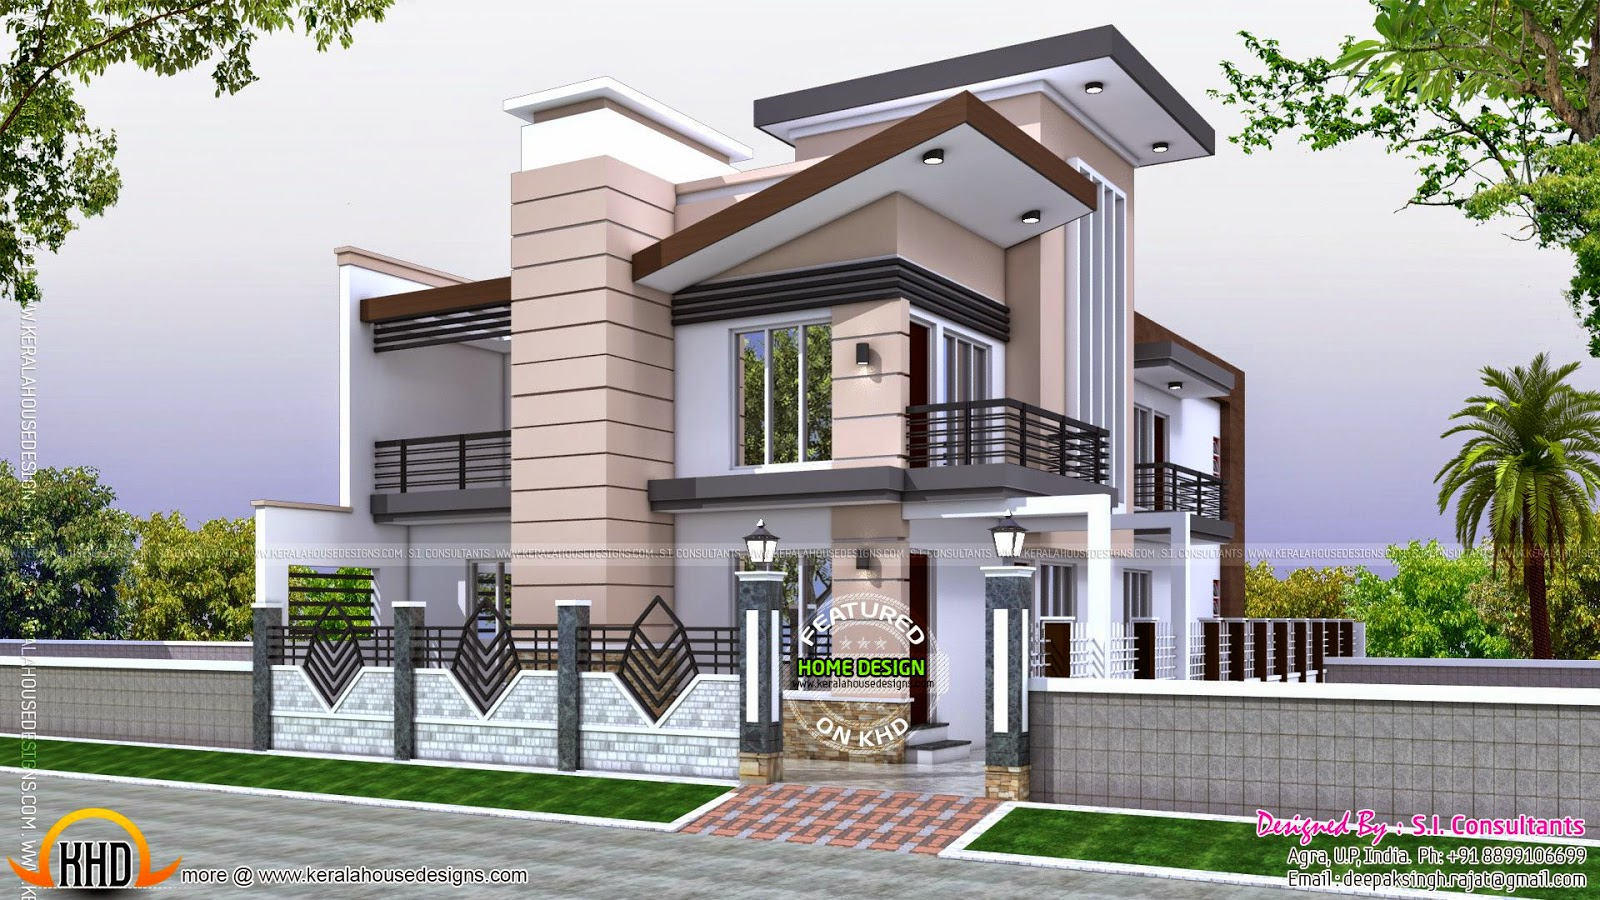 Indian home modern style kerala home design and floor plans for Home design ideas hindi